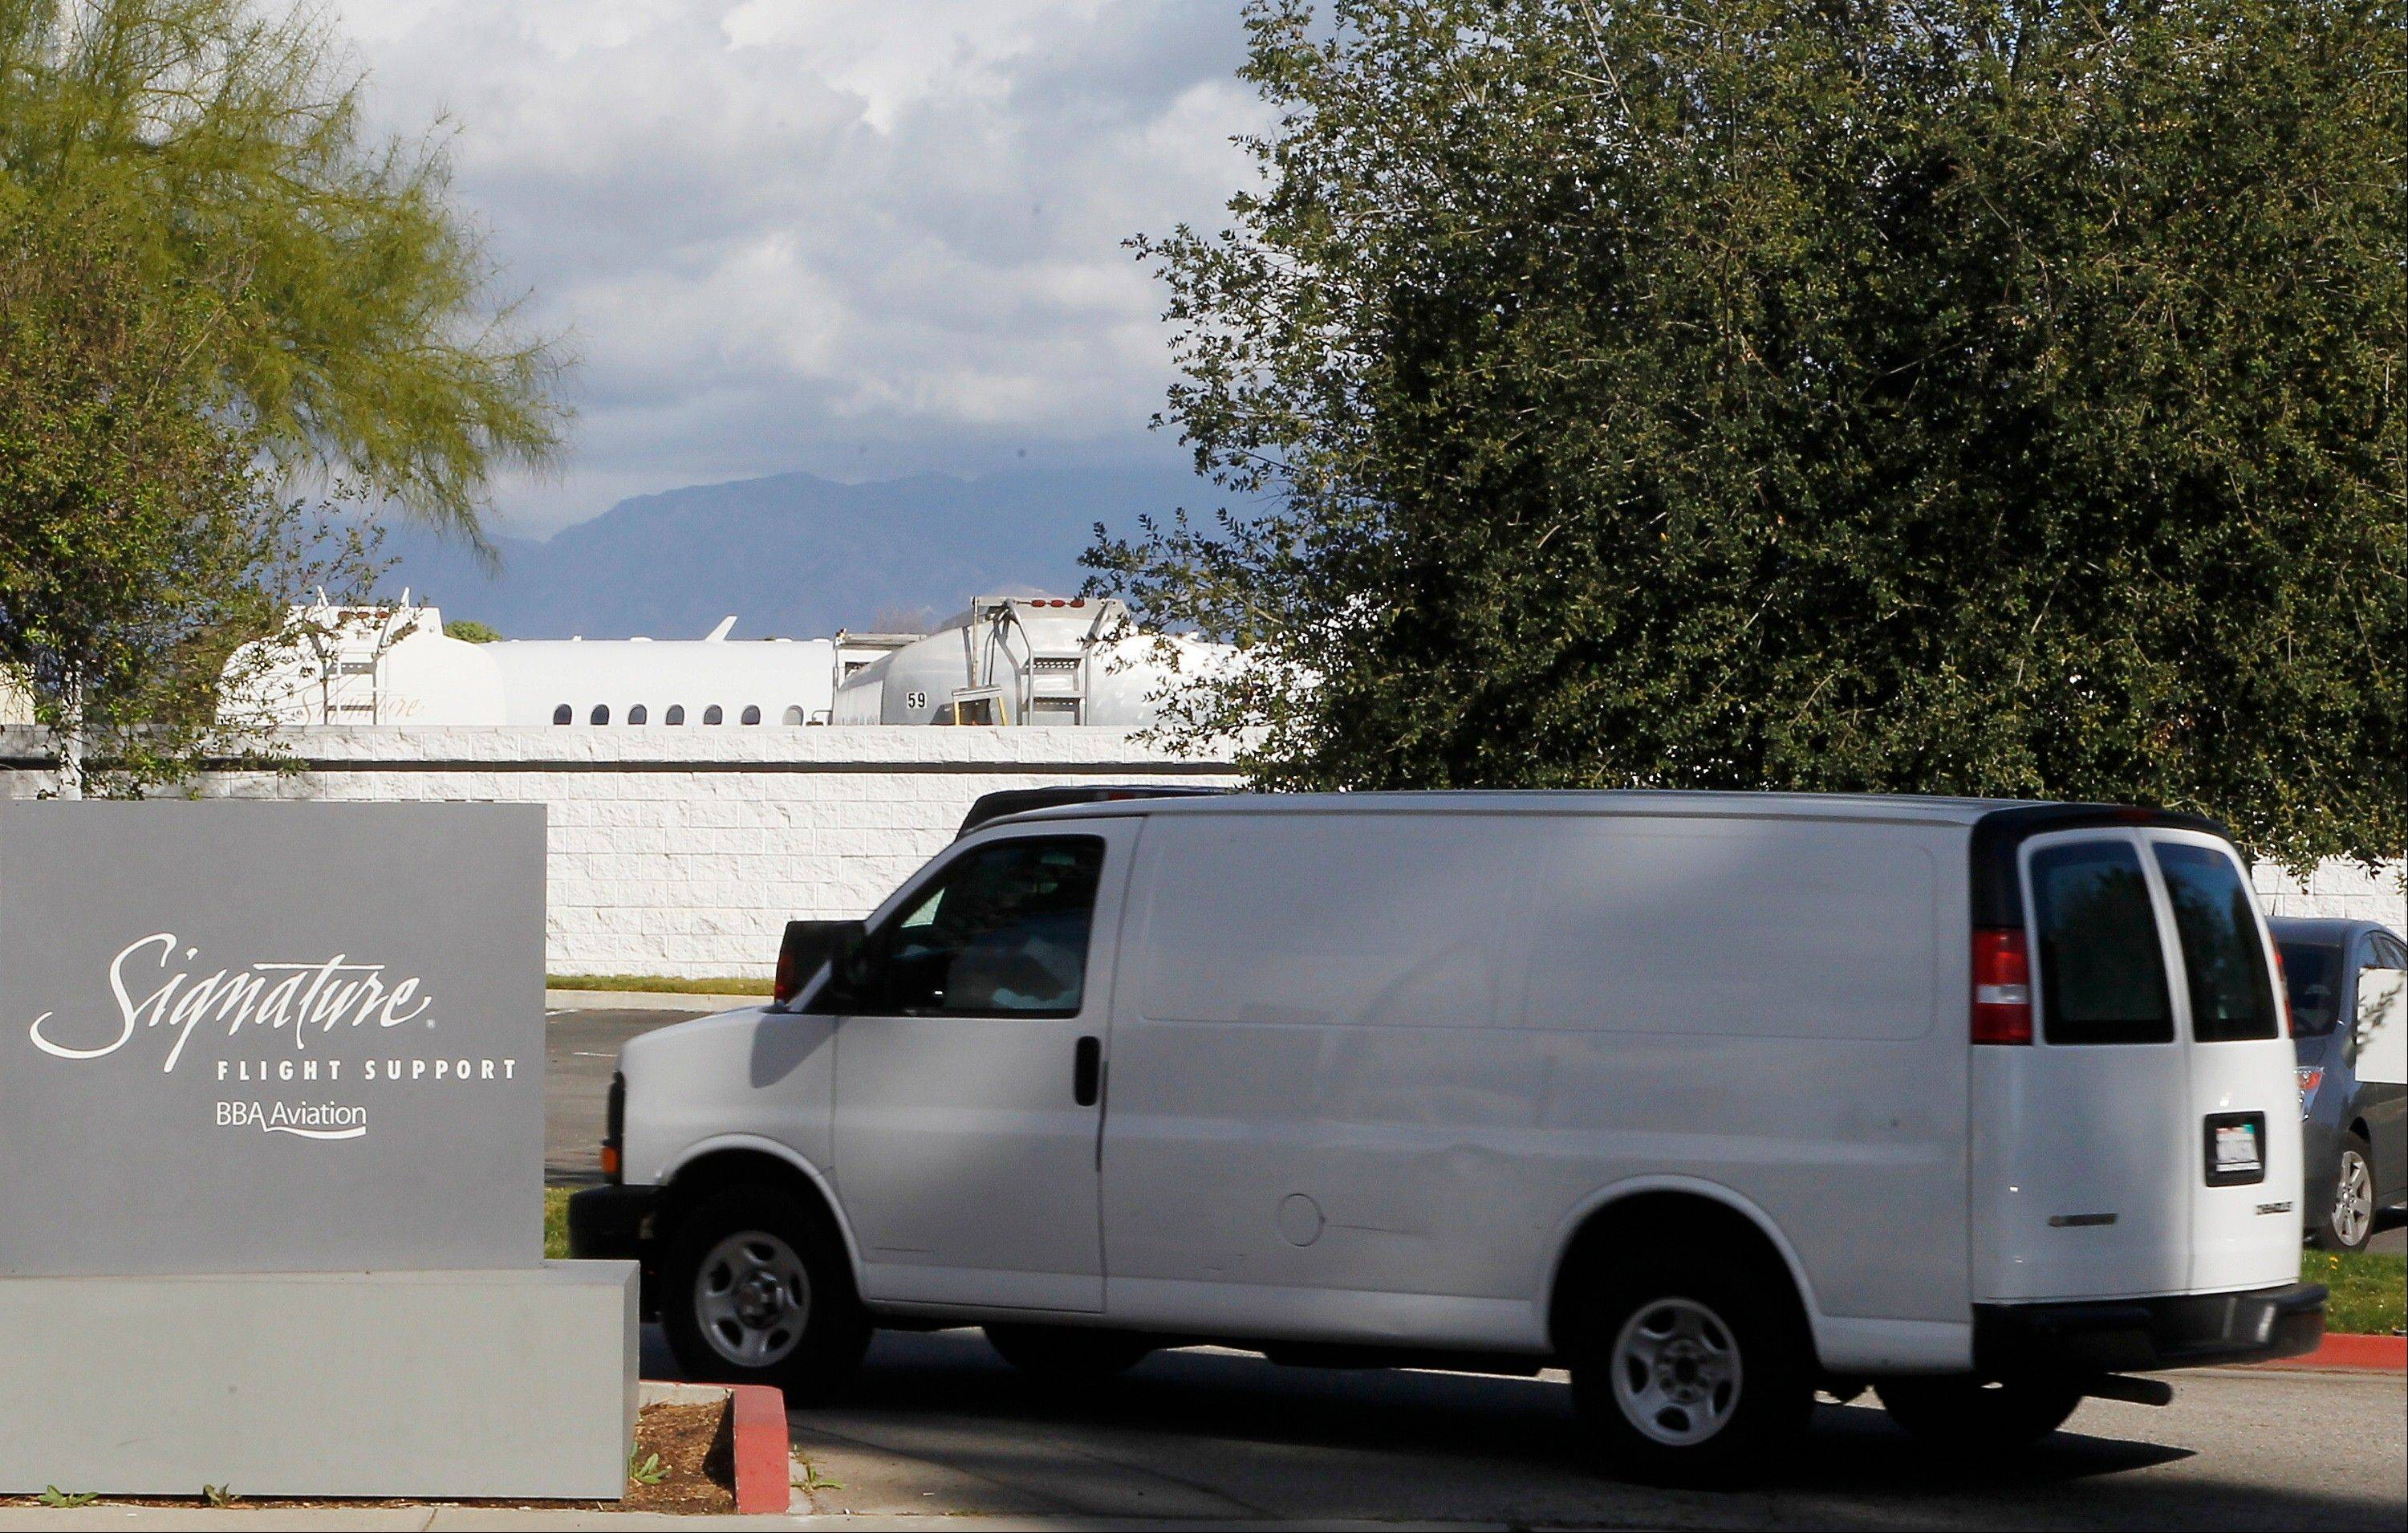 An unmarked van transports the body of singer Whitney Houston into the Van Nuys Airport in Van Nuys, Calif., Monday. The Los Angeles County coroner's office released the body to the family late Monday morning and it was flown to New Jersey, where her family was making arrangements for a funeral at the end of the week.